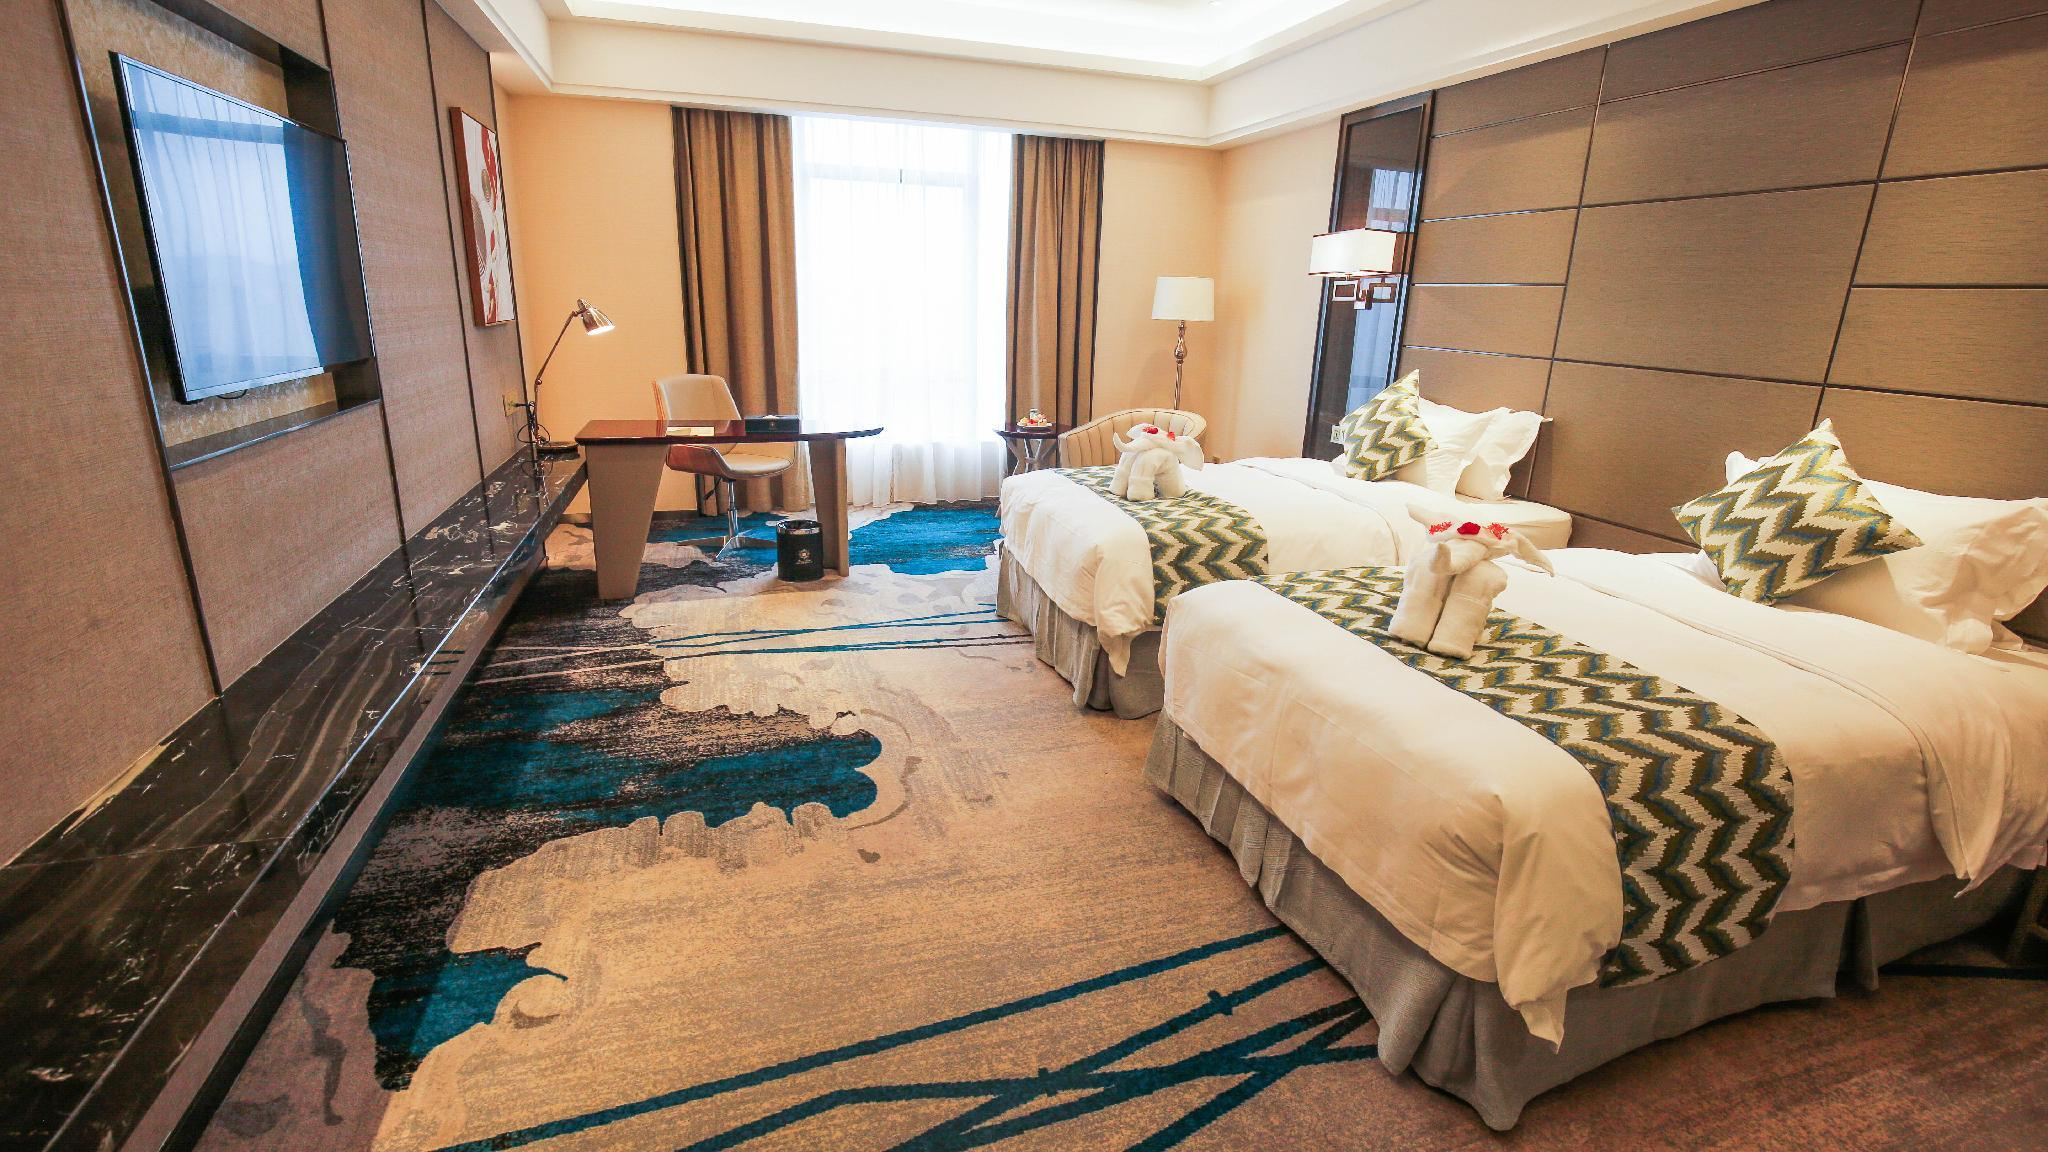 Deluxe River View Room with Twin Bed (Deluxe River View Room Twin)